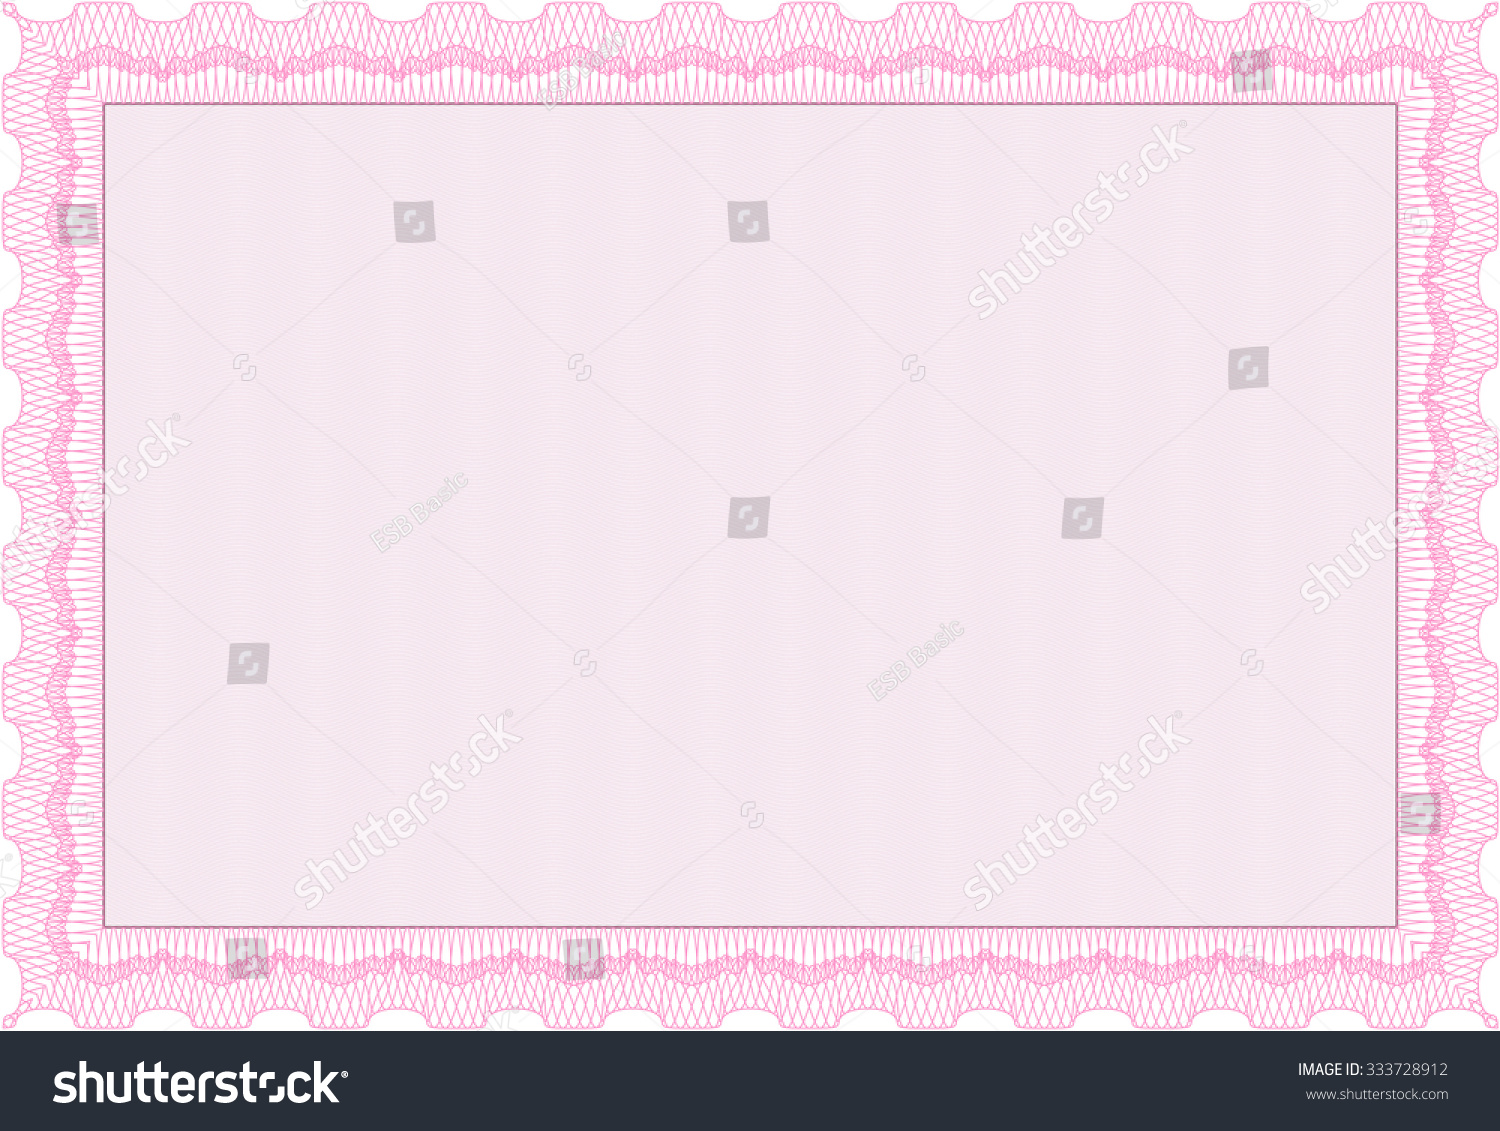 Diploma template certificate template vector pattern stock vector diploma template certificate template vector pattern stock vector 333728912 shutterstock yadclub Choice Image